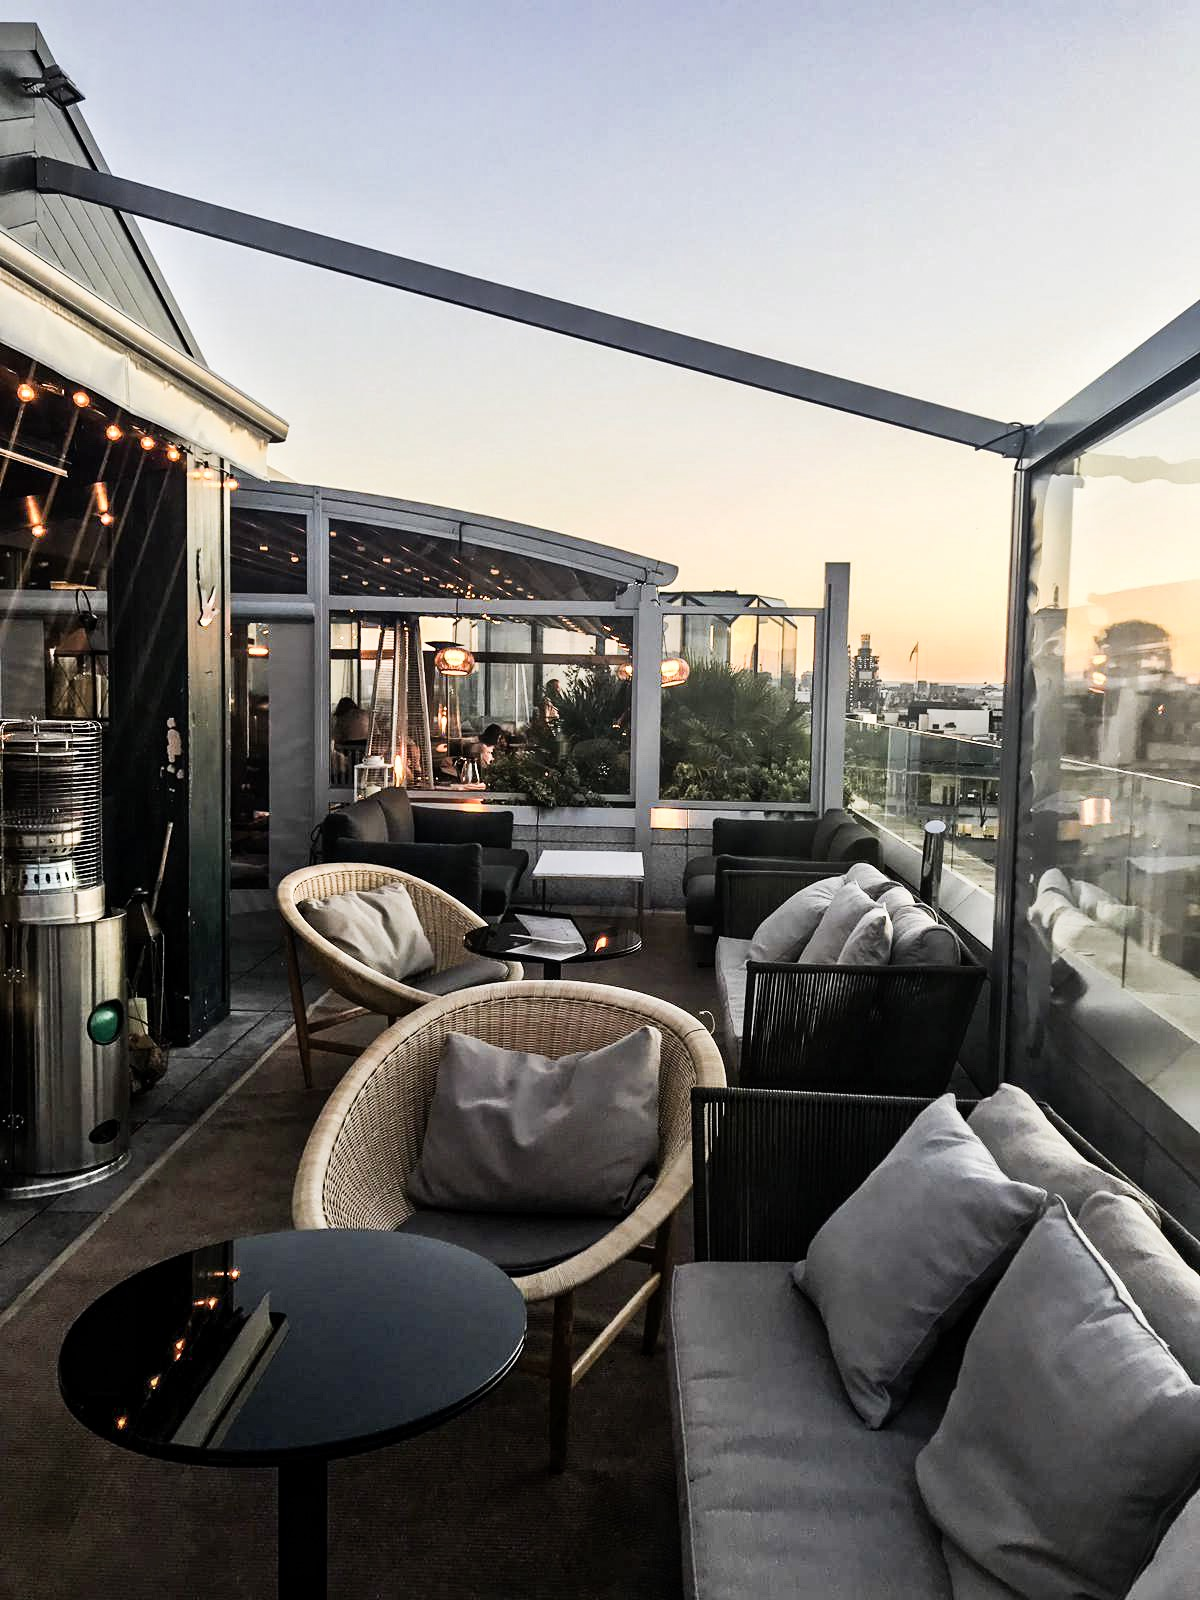 Our Favourite 5 Rooftop Bars in London - Pretty Little London